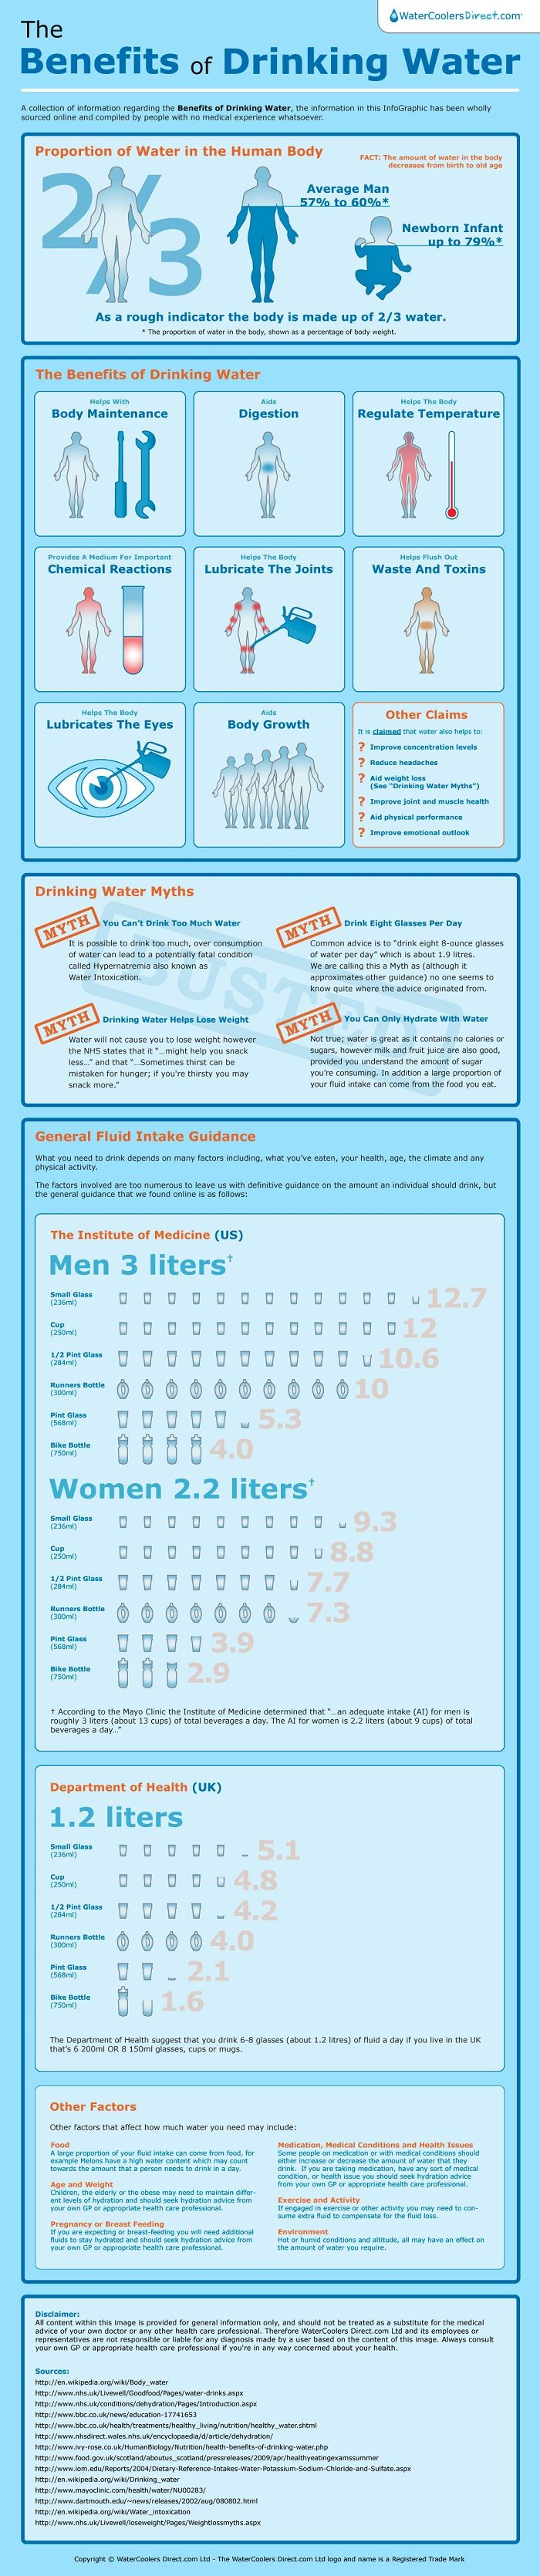 The Benefits of Drinking Water,    Posted on September 11, 2012 by PositiveMed Team.      Advertisement:   This infographic summarizes all the benefits of drinking water. Remember, although you can hydrate by other drinks, drinking water is always your healthiest option.